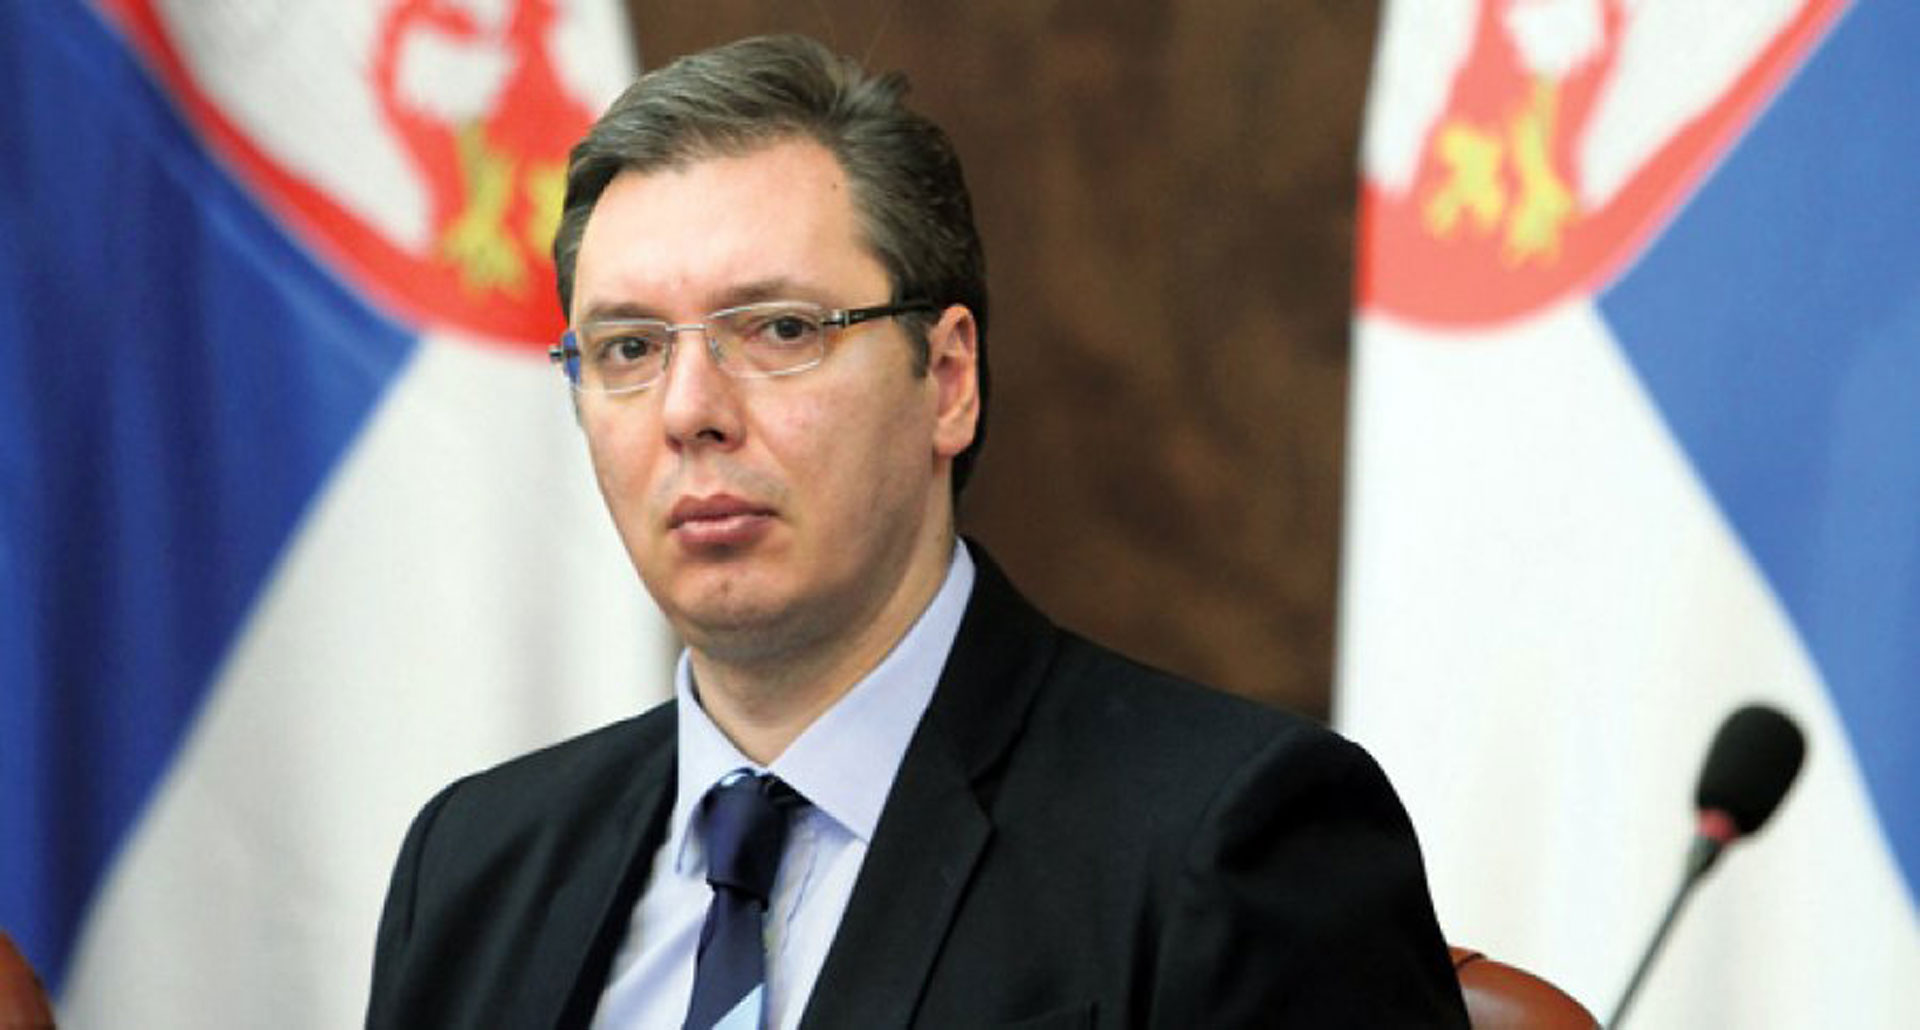 Son of the Serbian president infected the coronavirus